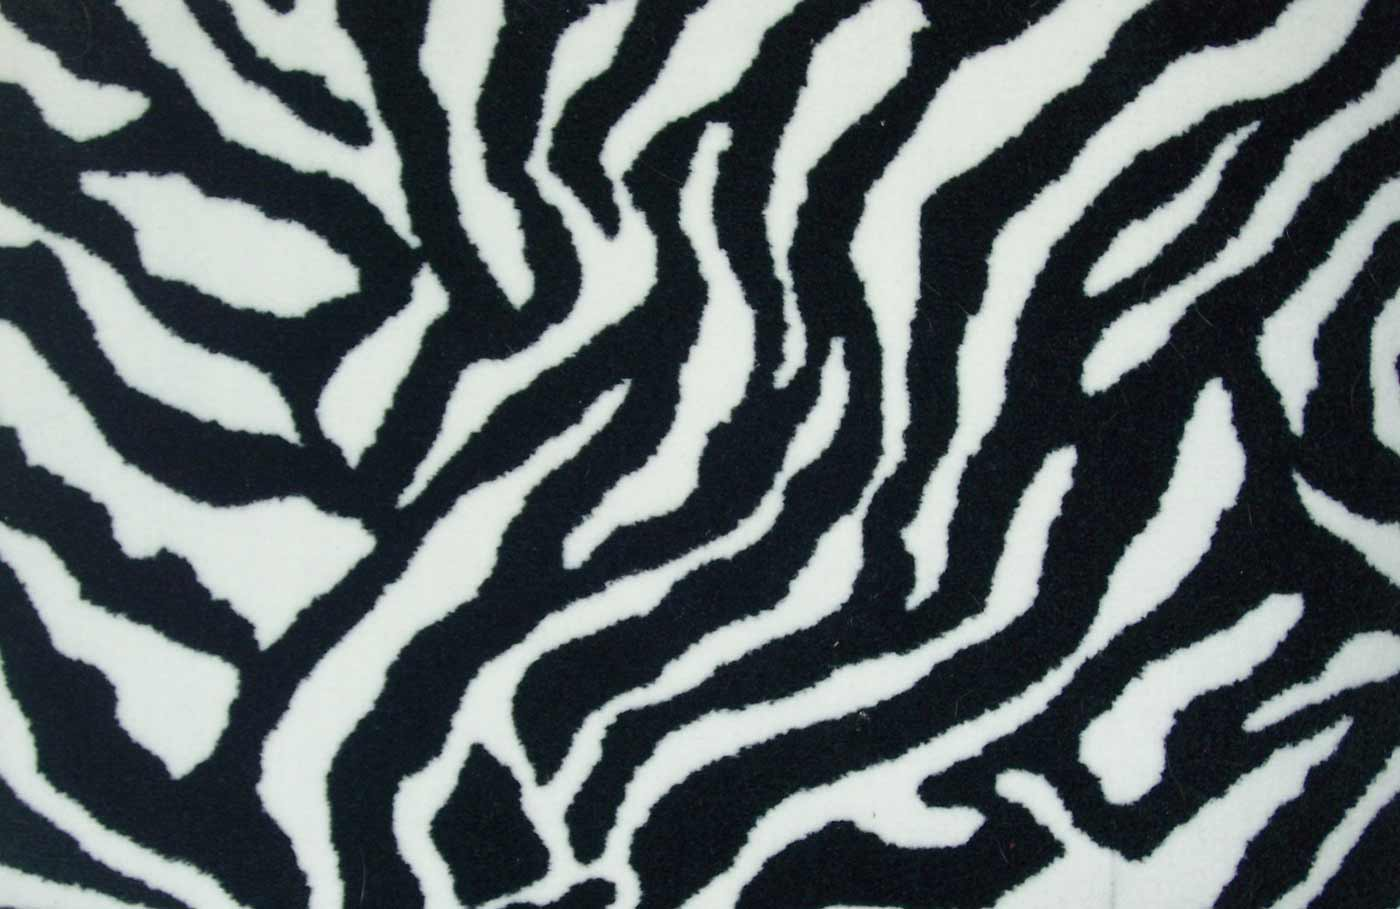 Home carpet with Black and White Zebra Print